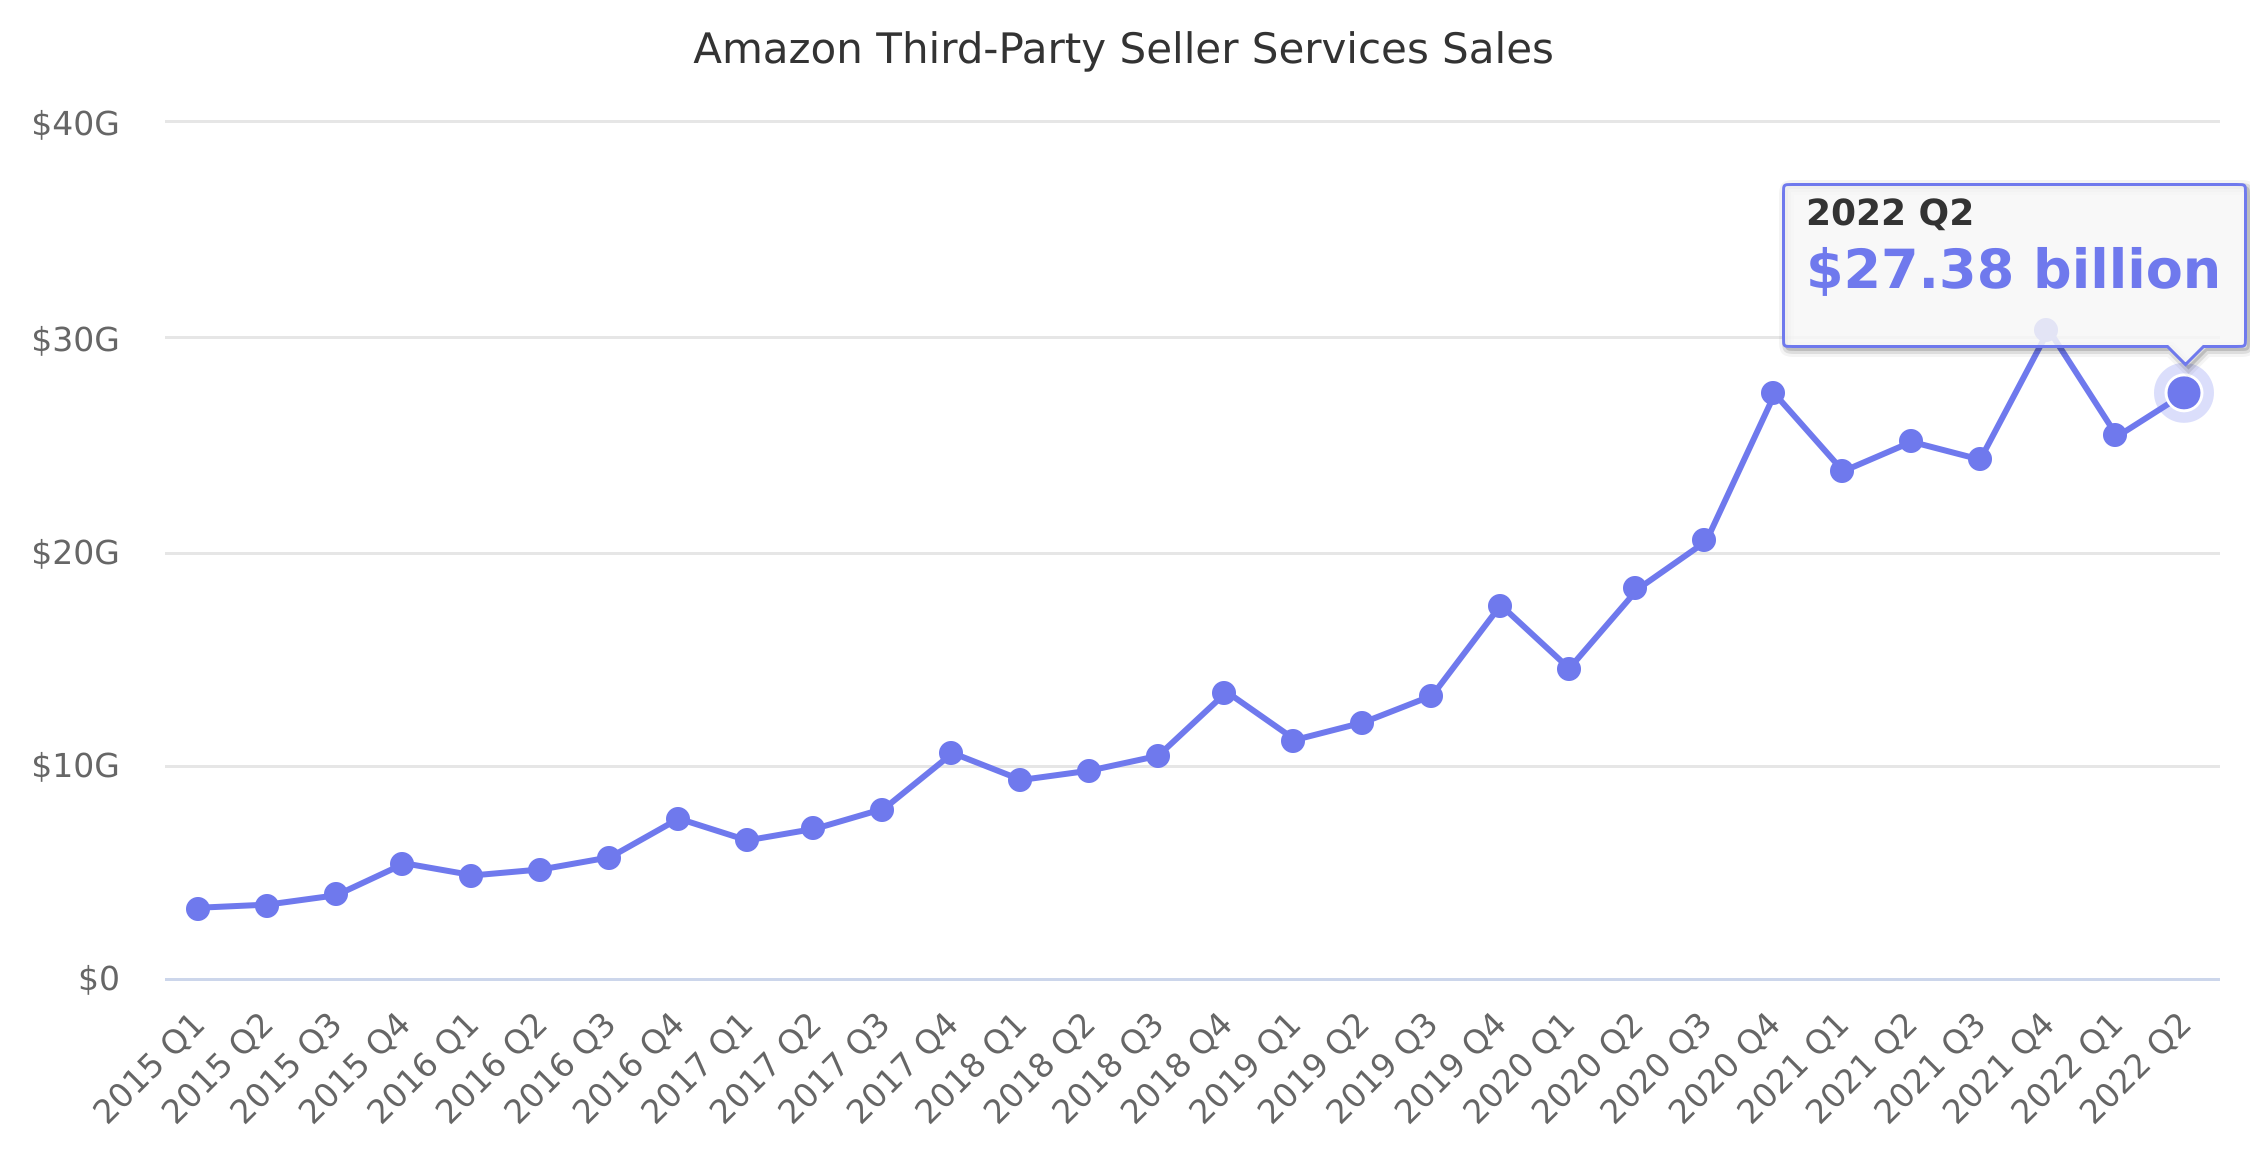 Amazon Third-Party Seller Services Sales 2015-2020